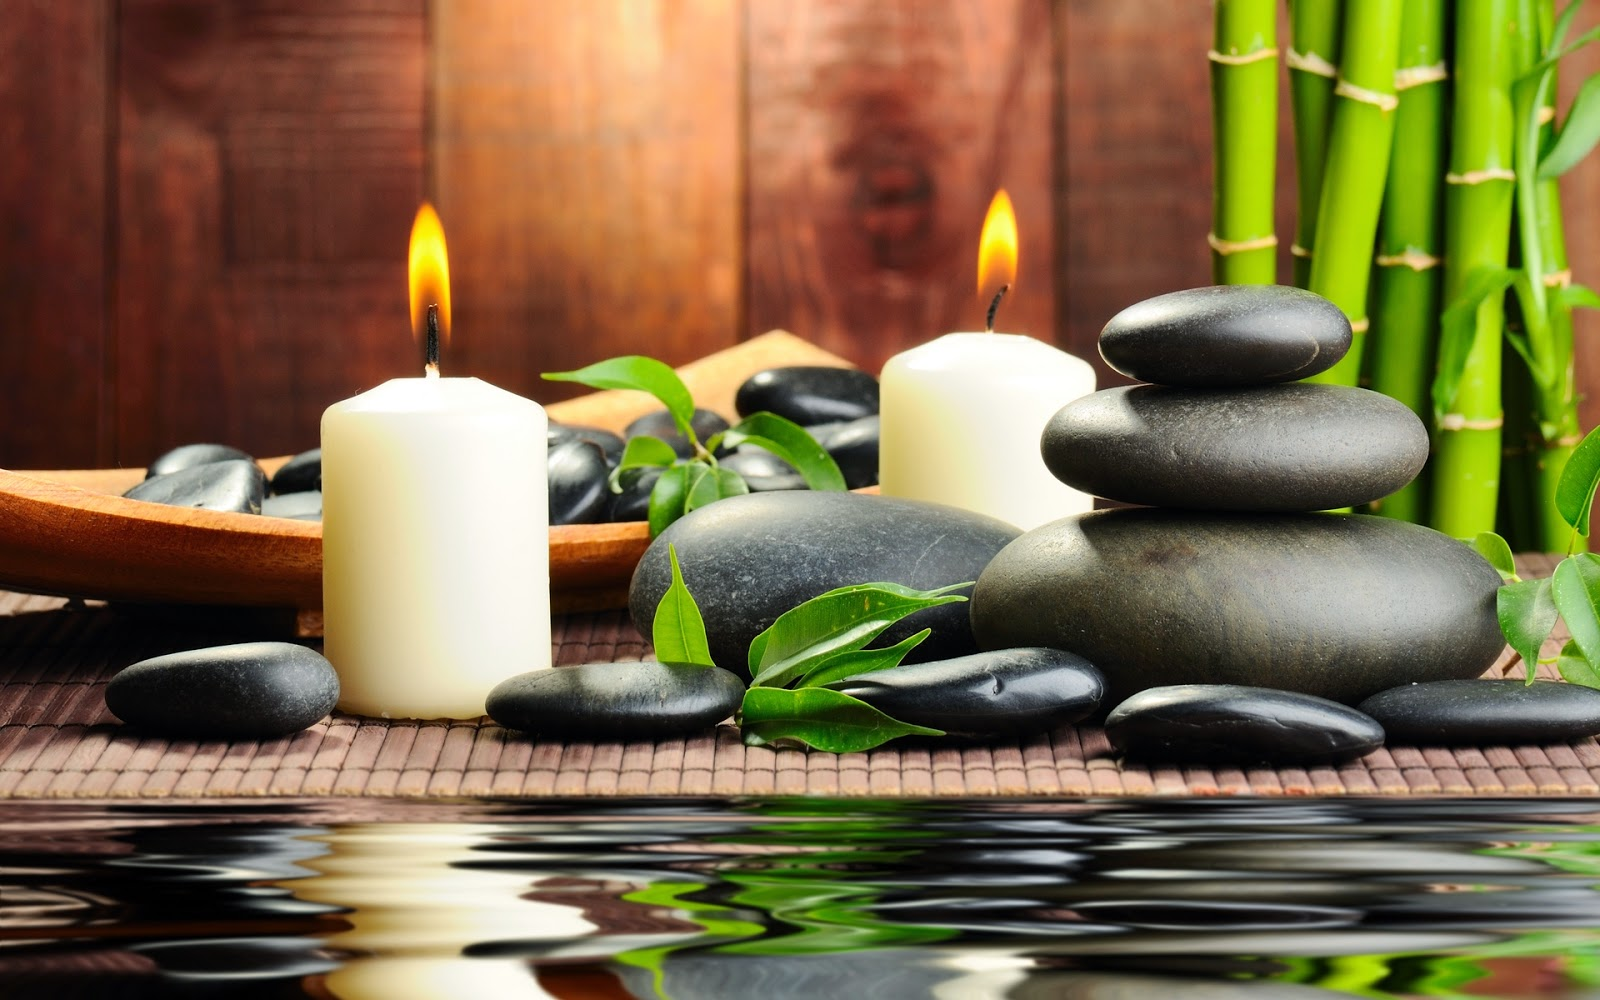 Chinese Zen meditation pictures 1080p Full HD widescreen Wallpapers 1600x1000